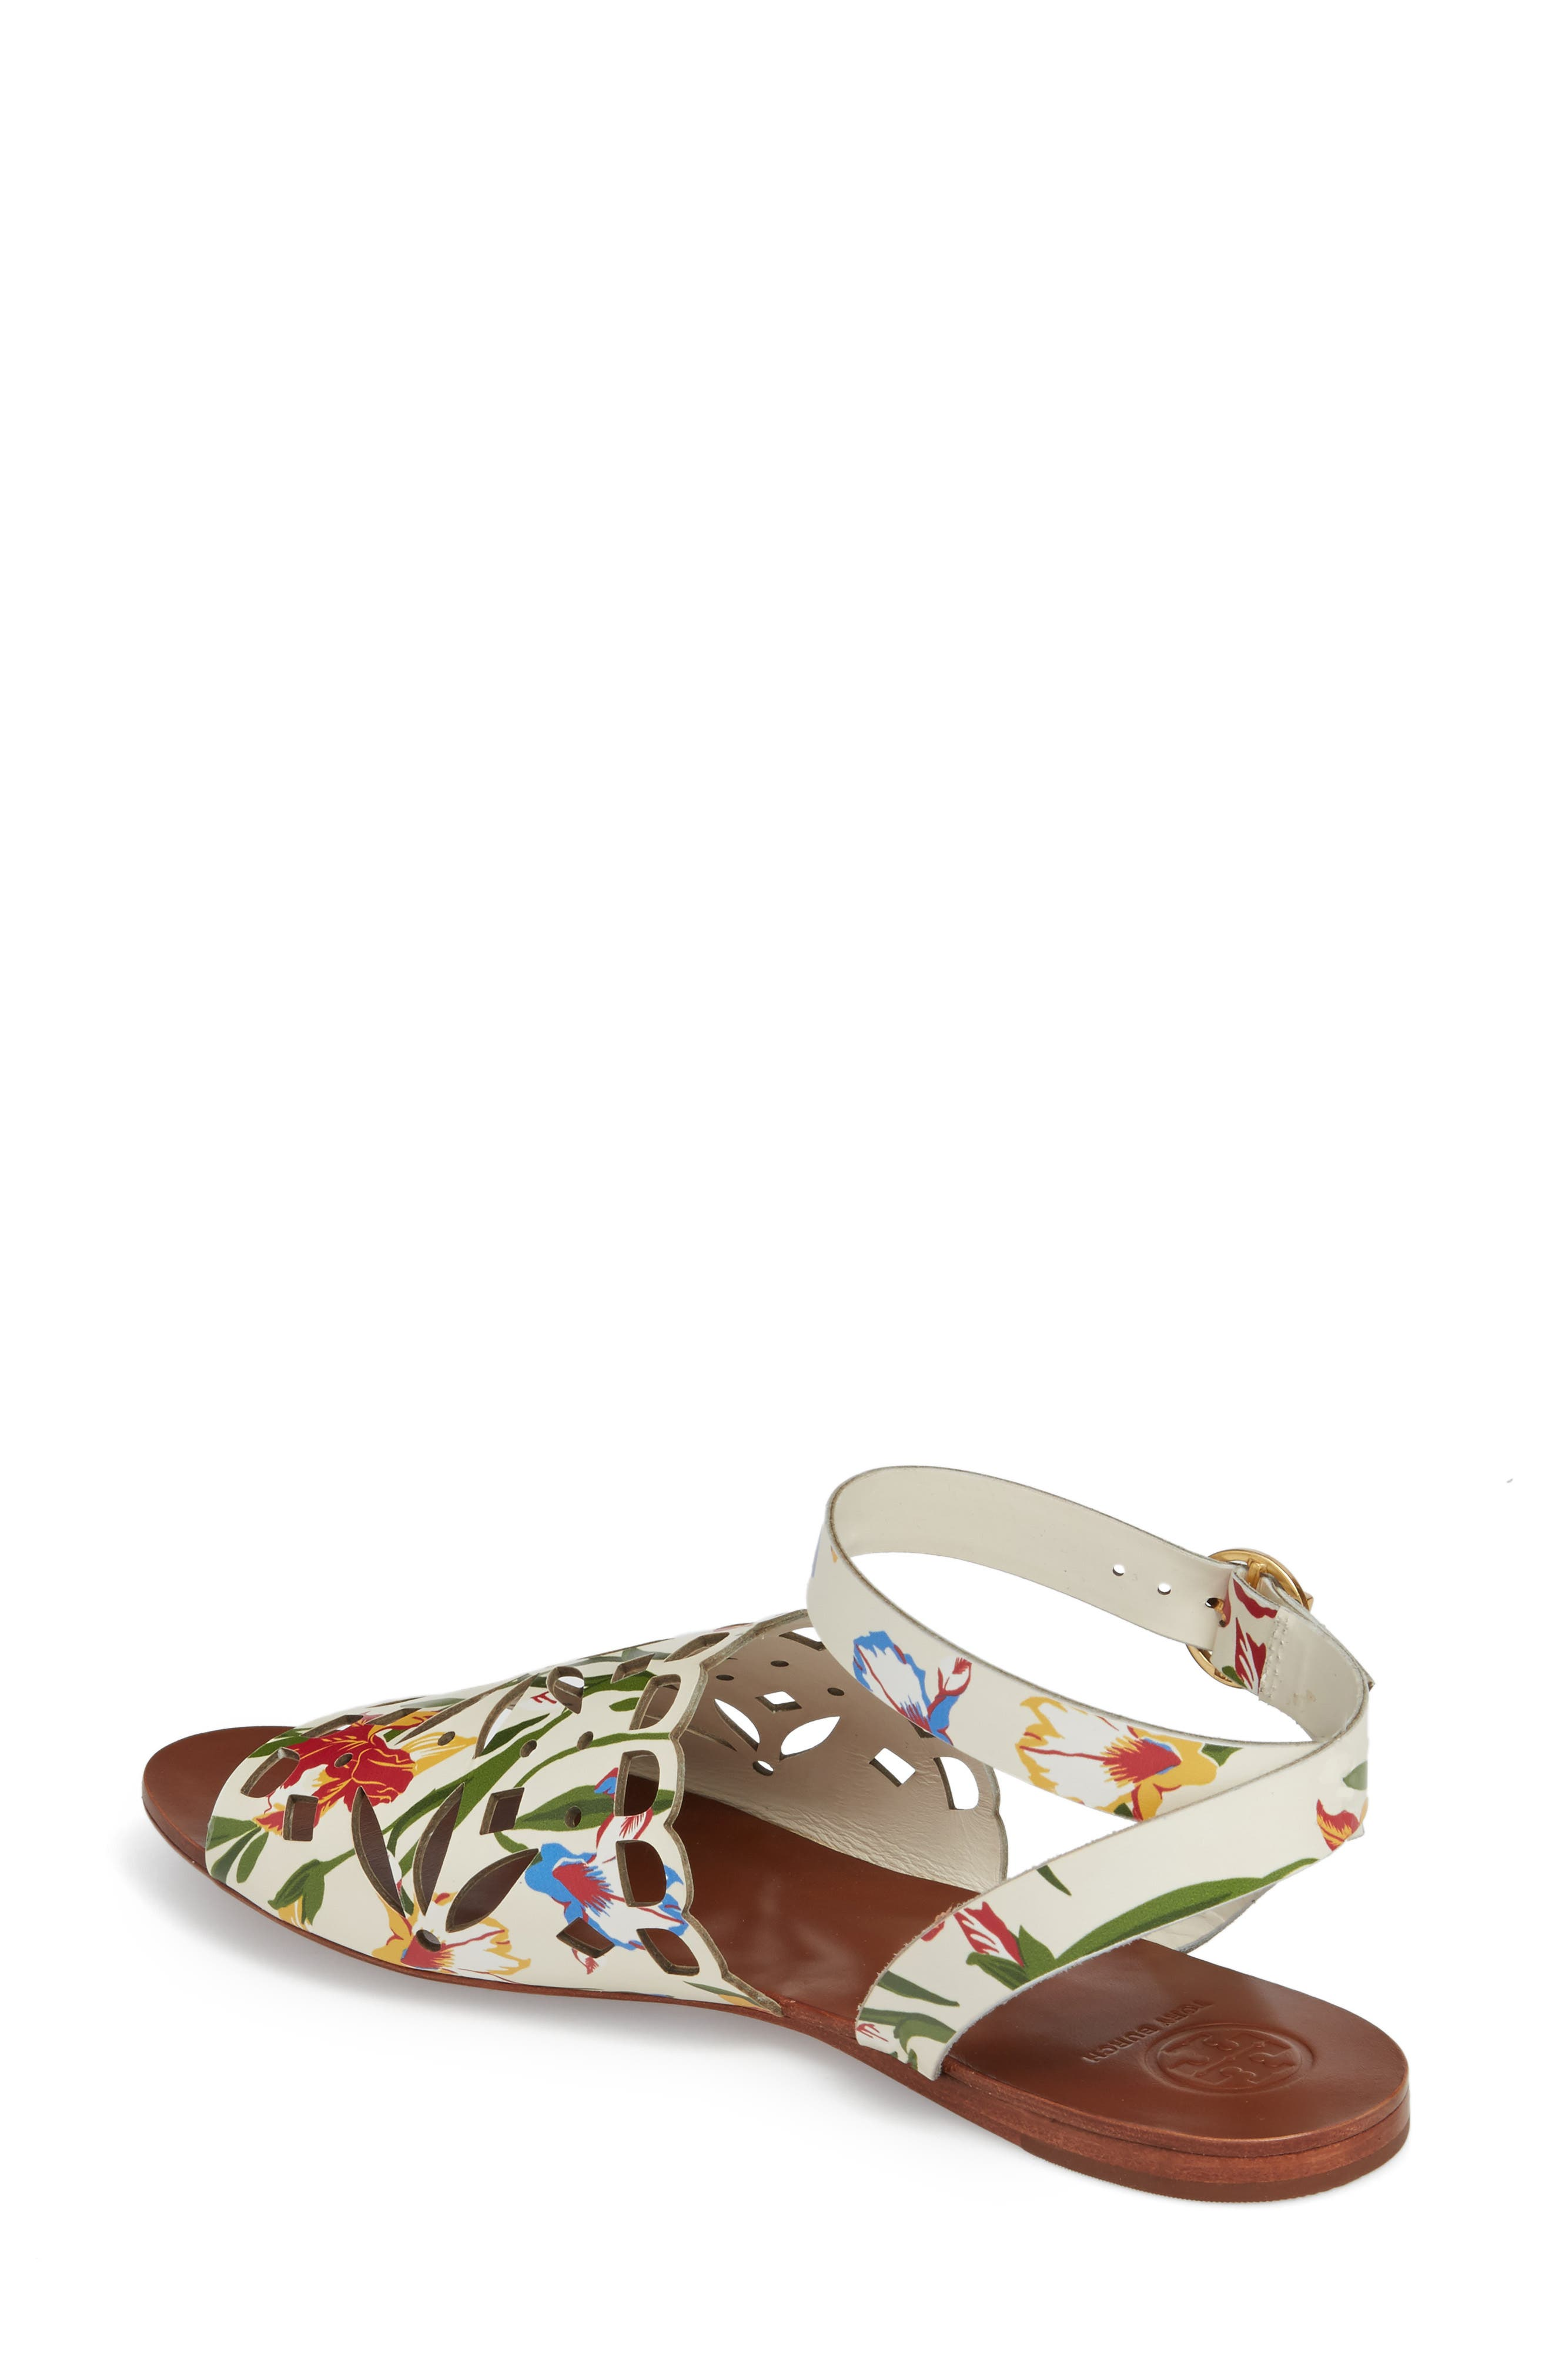 May Printed Floral Ankle Strap Sandal,                             Alternate thumbnail 2, color,                             100